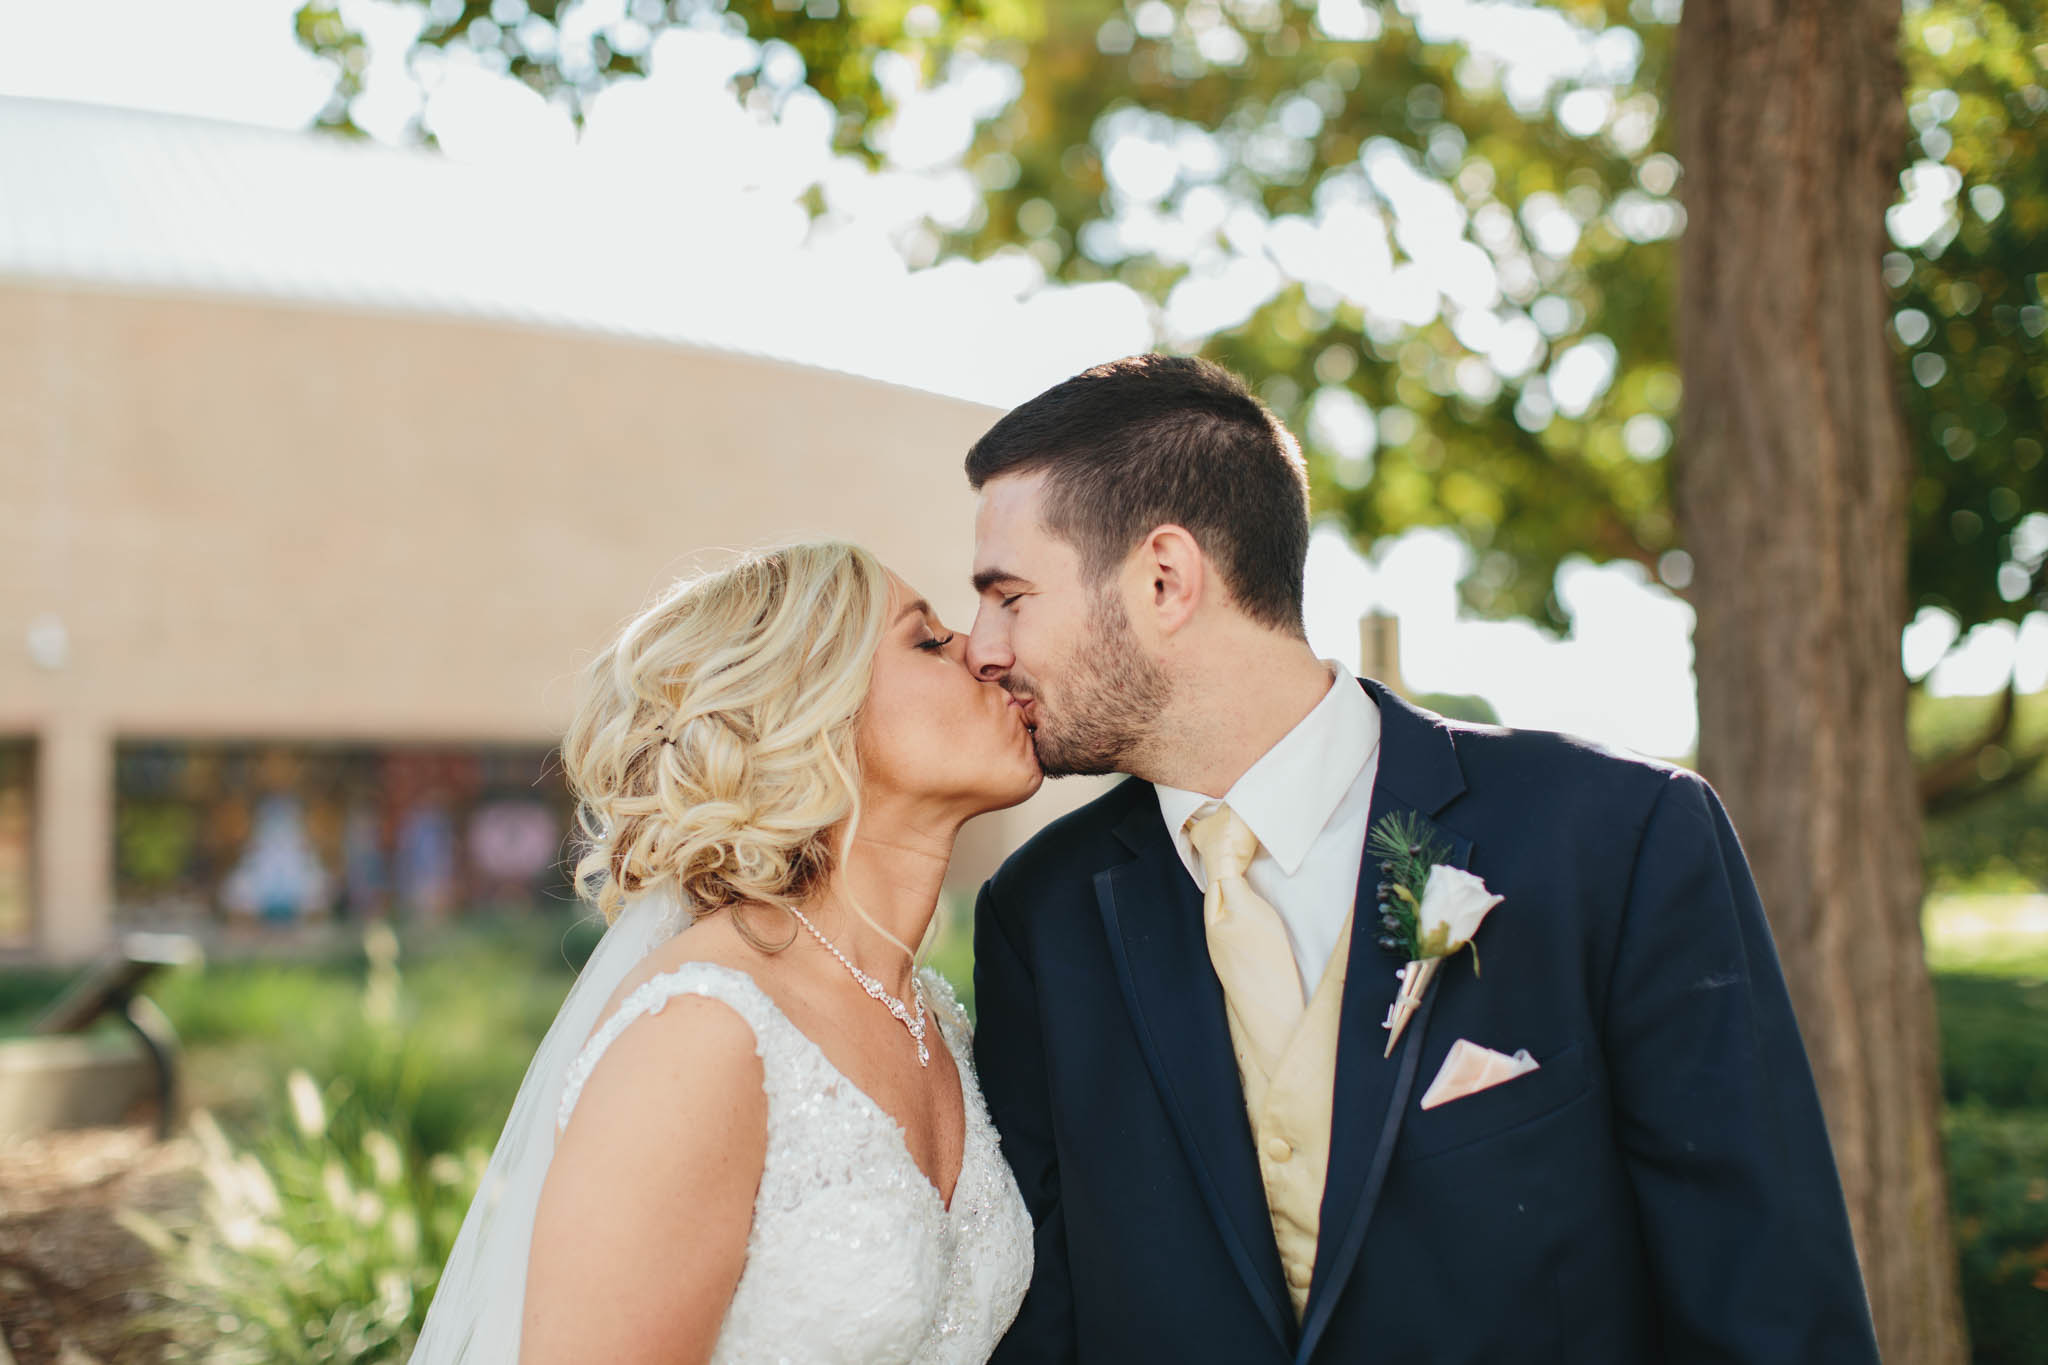 Jillian VanZytveld Photography - Grand Rapids Lifestyle Wedding Photography - 125.jpg